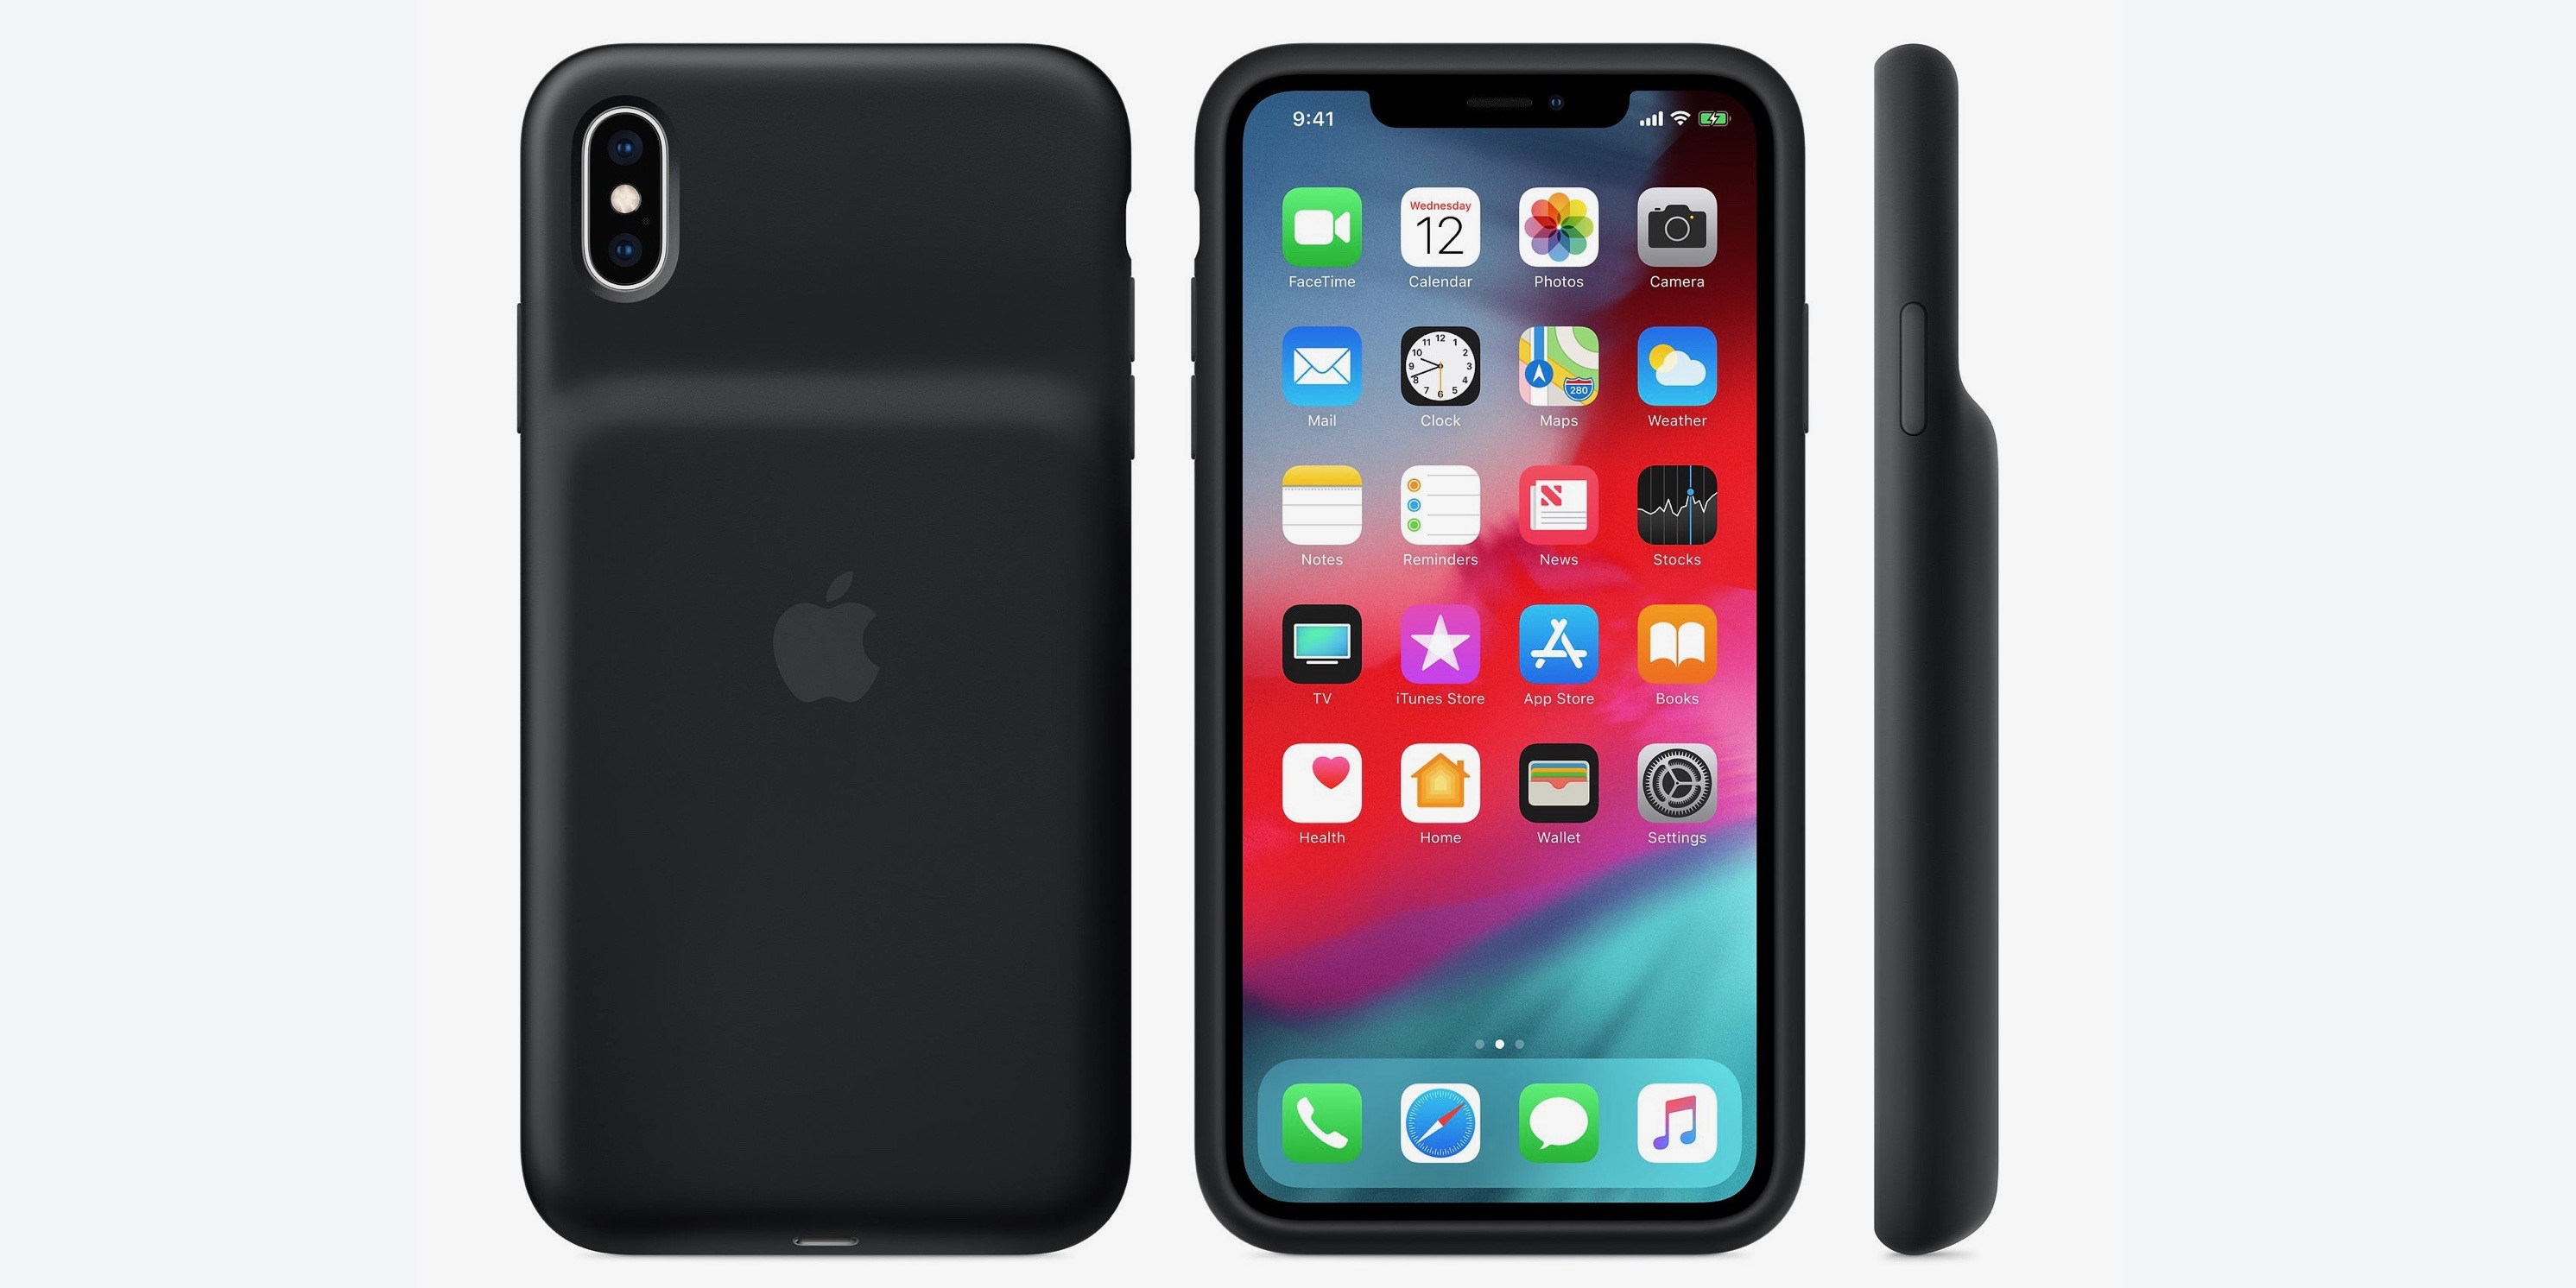 Smart Battery Case models for iPhone 11/Pro/Max found in iOS